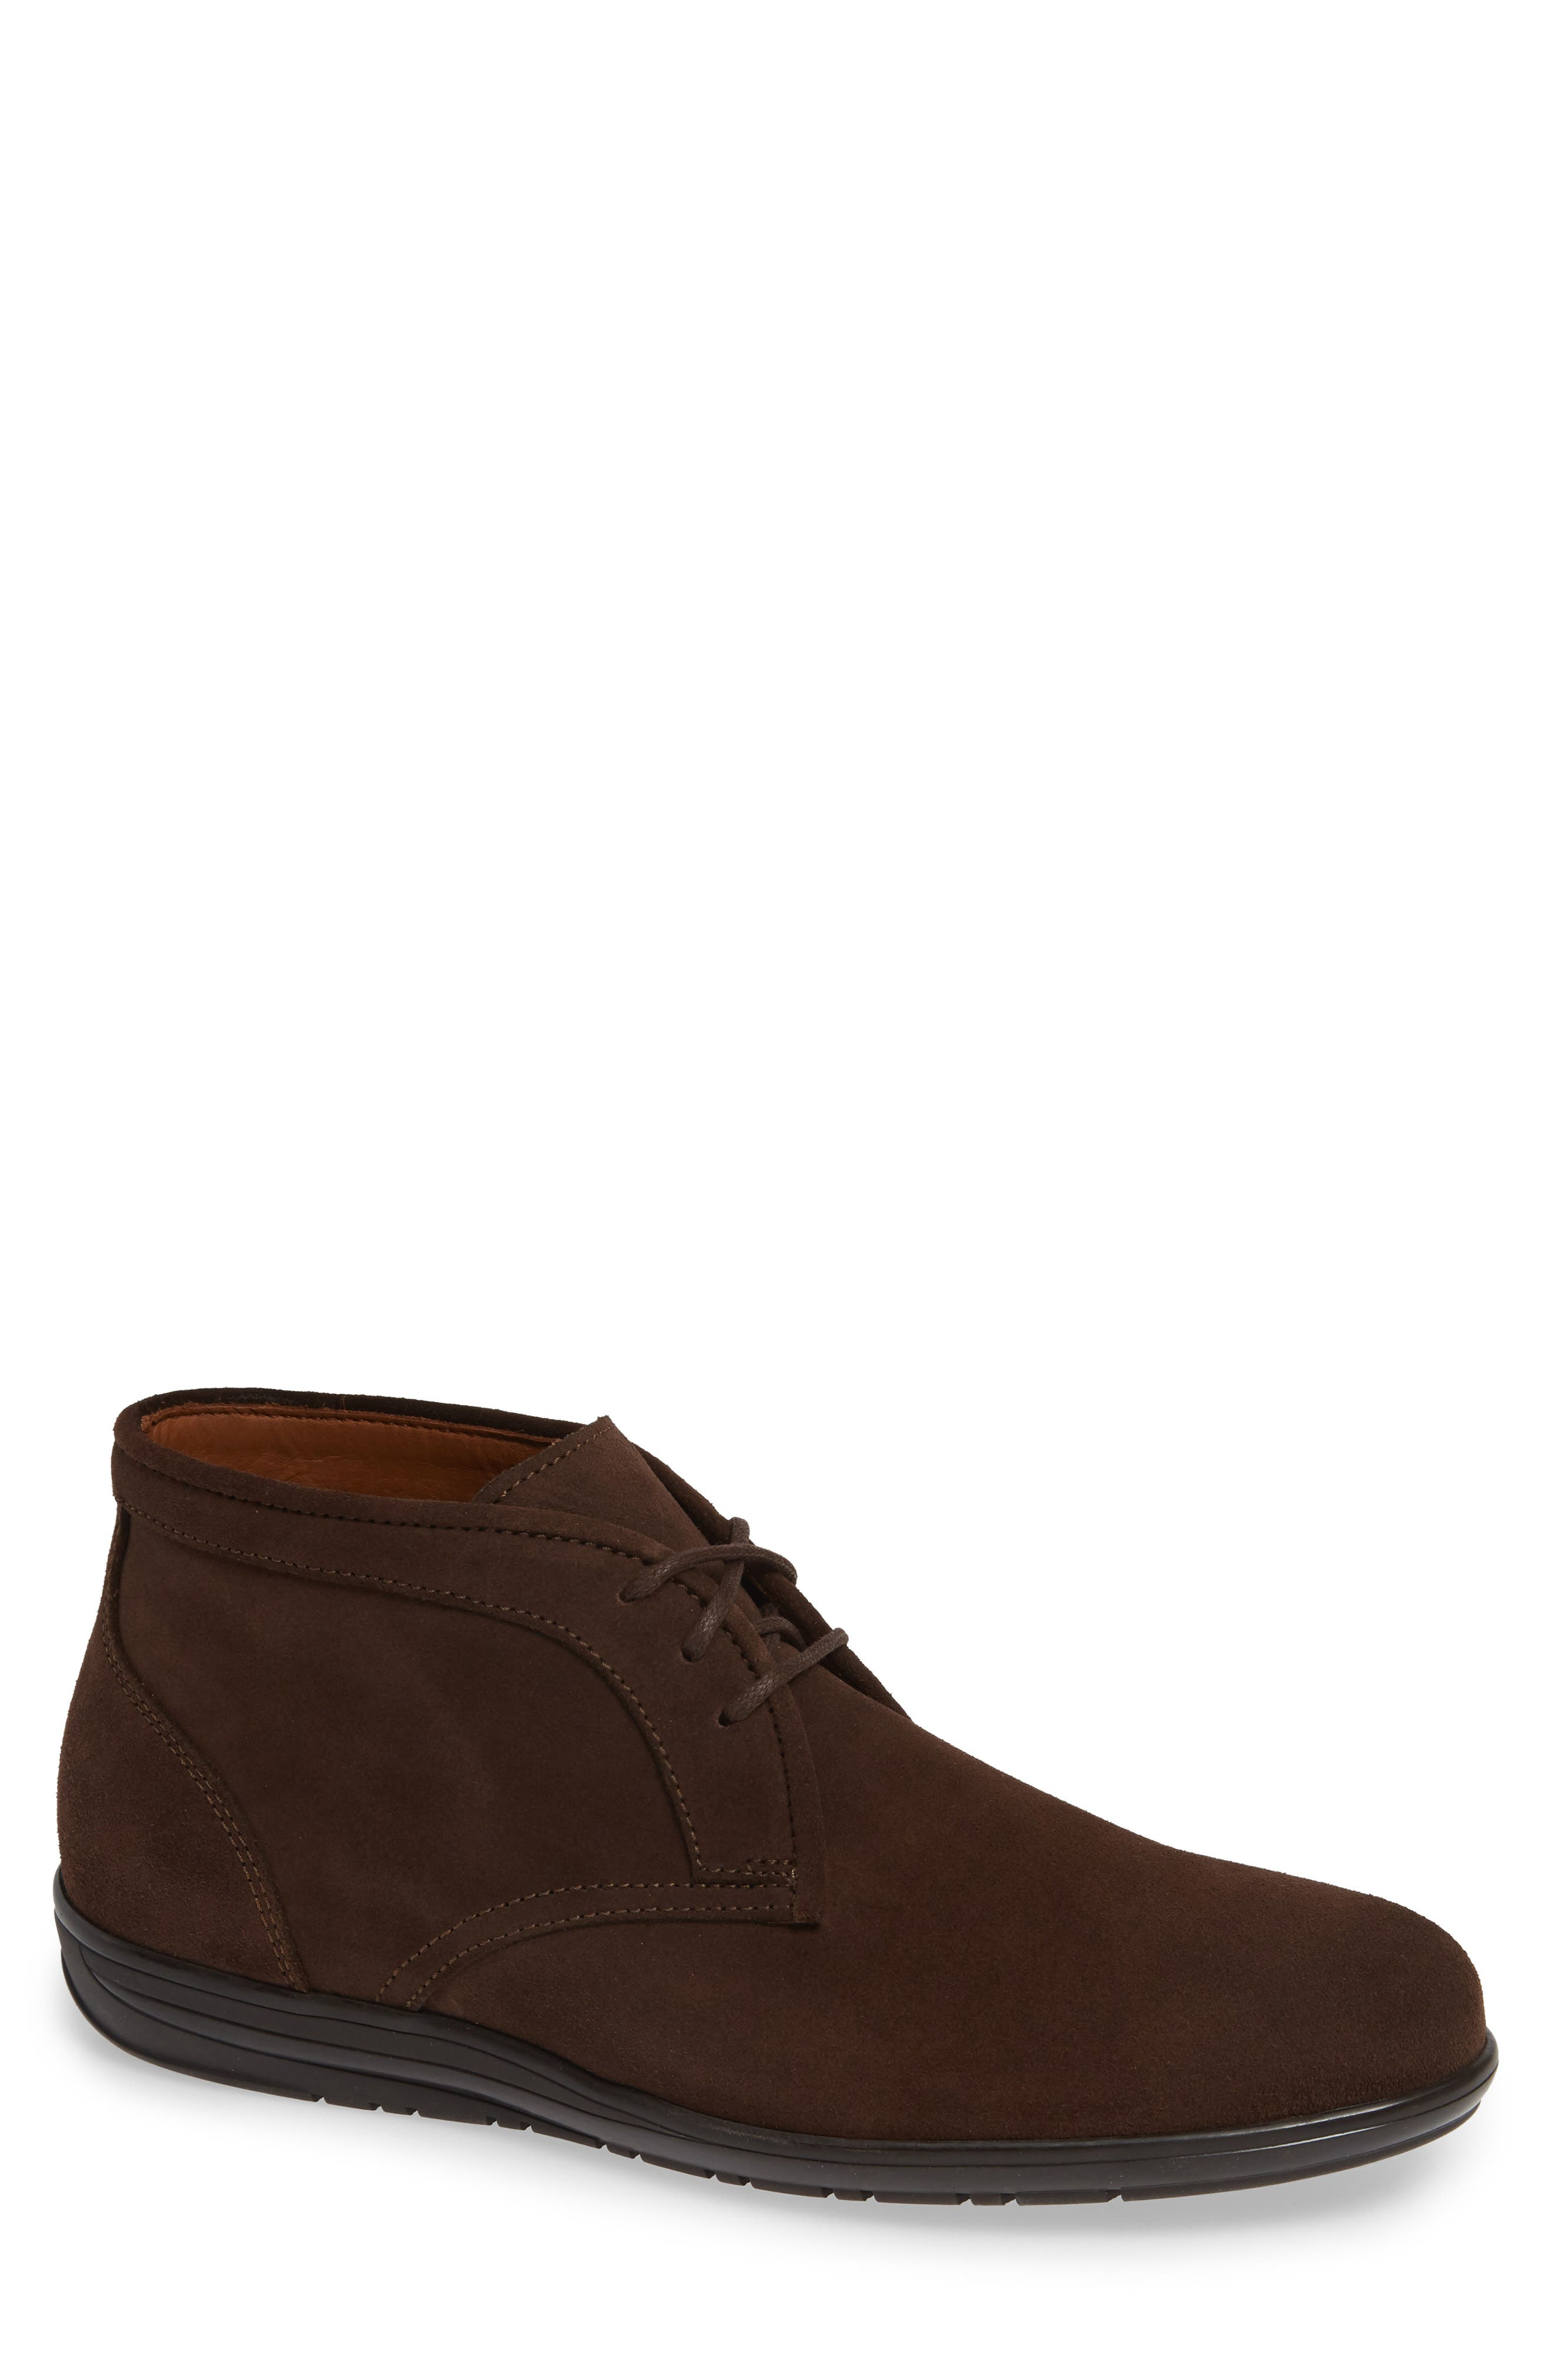 Aquatalia Nicholas Weatherproof Chukka Boot, Brown